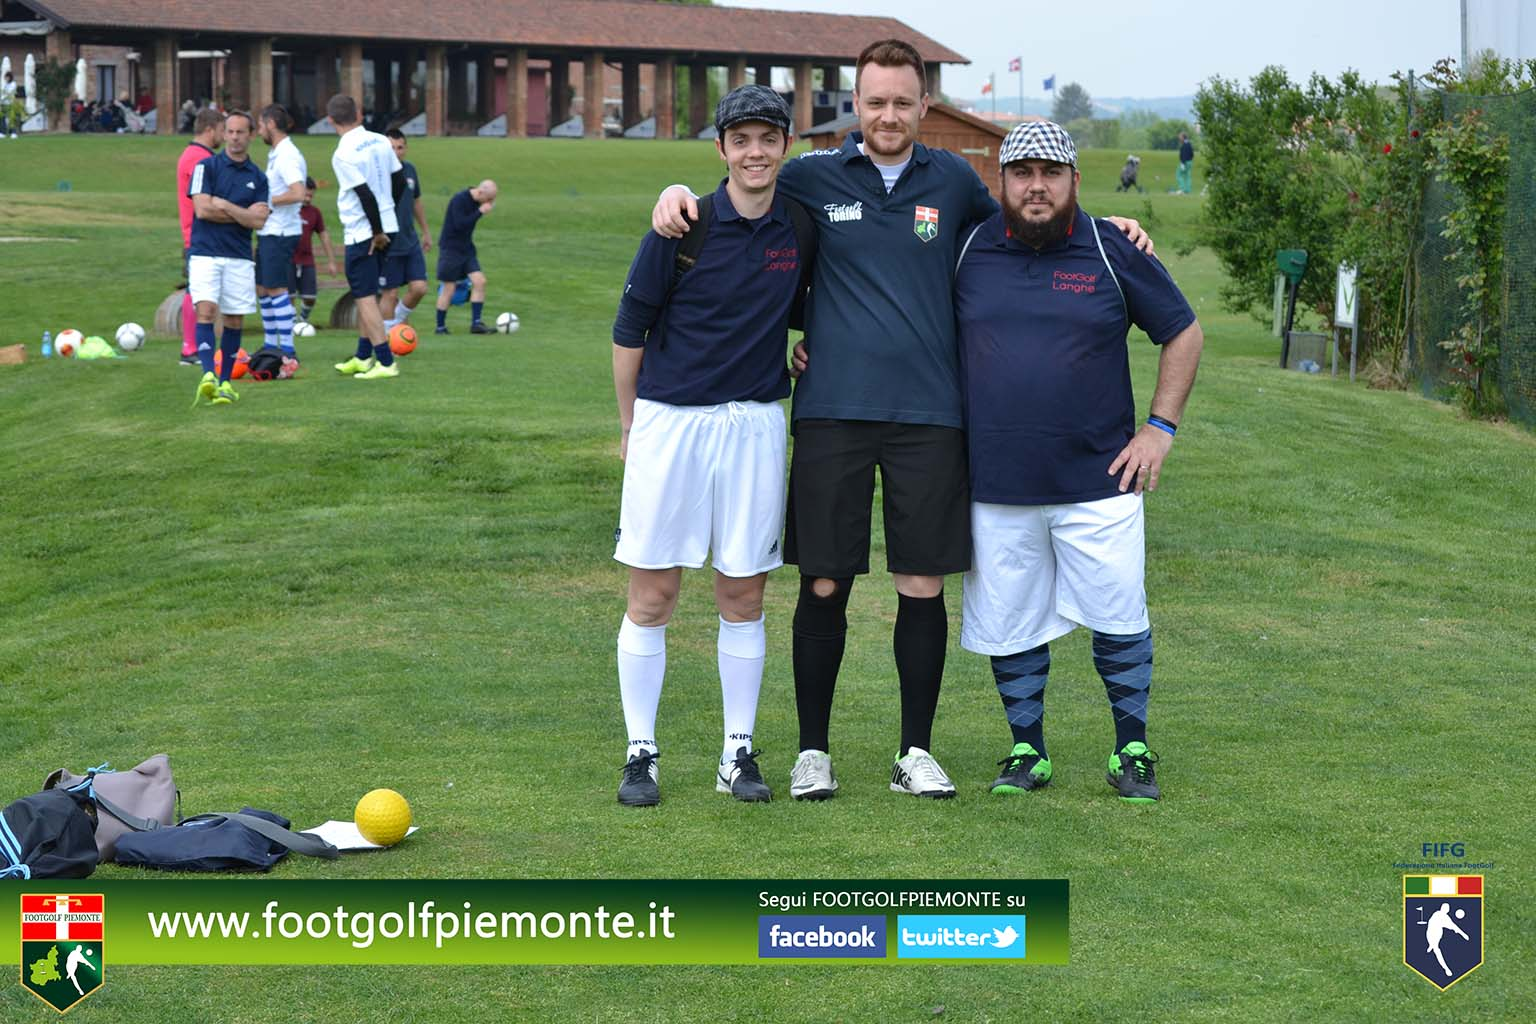 FOTO 9 Regions' Cup Footgolf Piemonte 2016 Golf Città di Asti (At) 30apr16-78